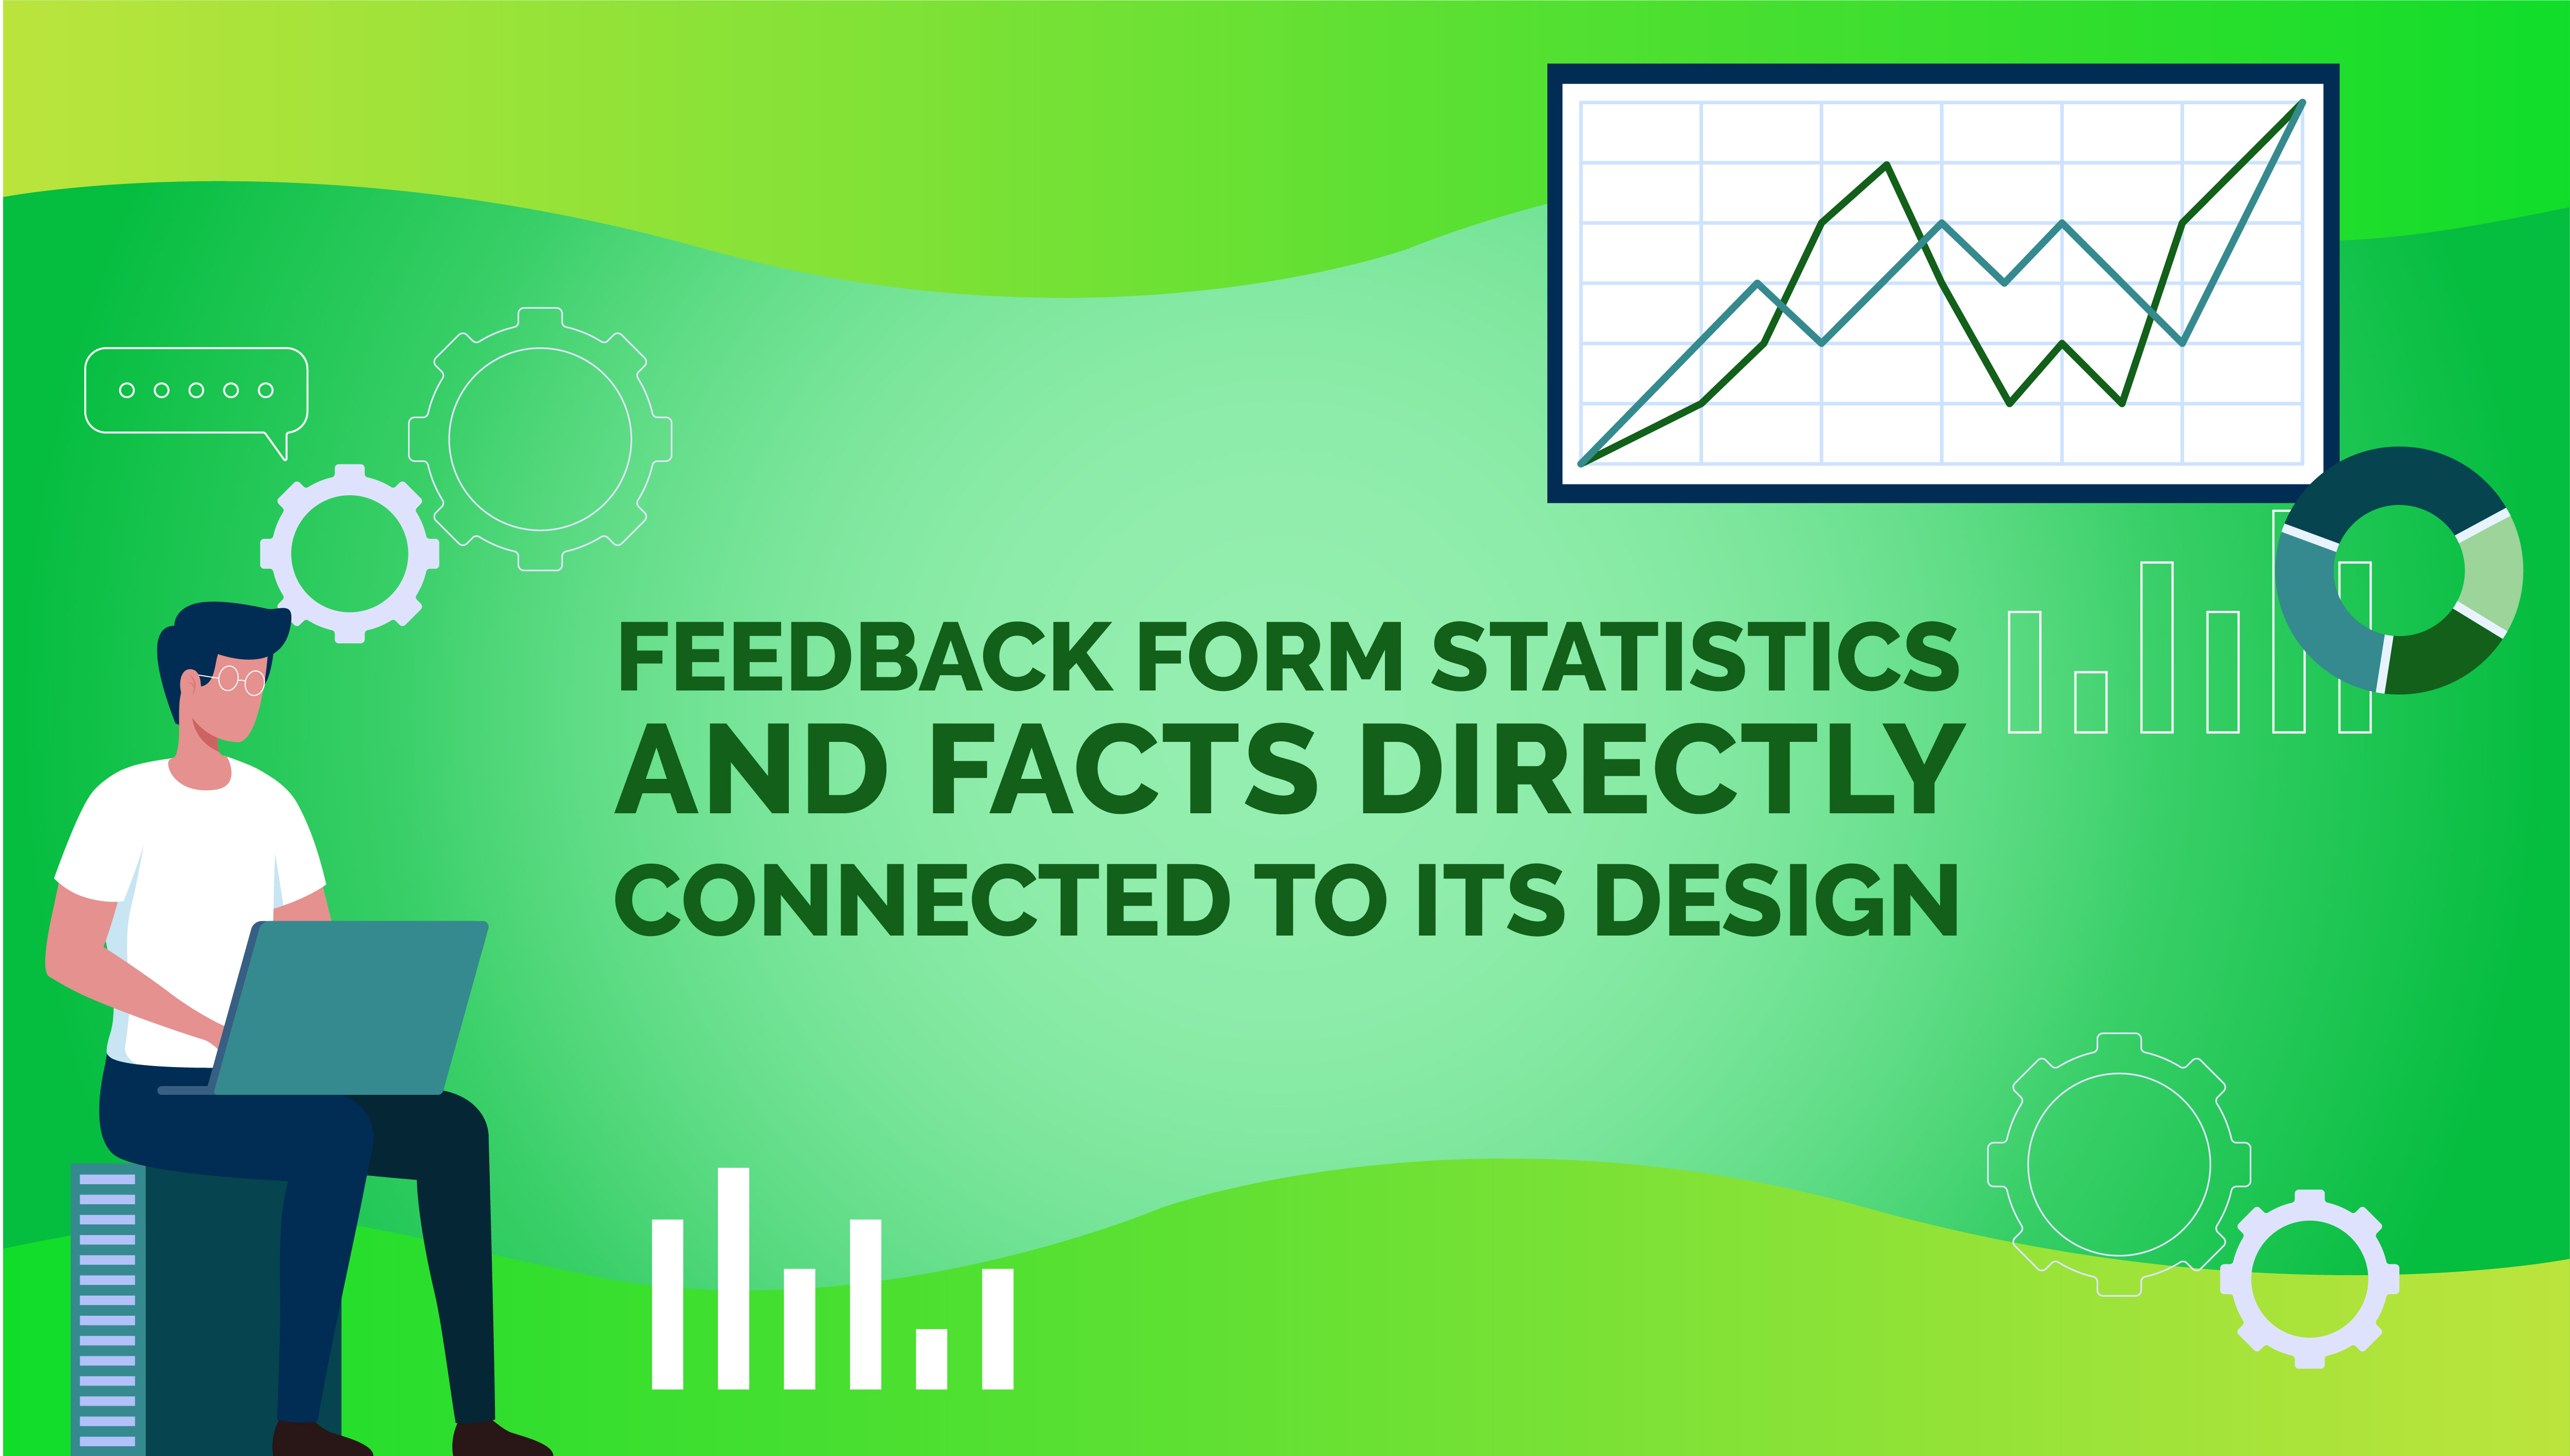 Feedback Form Statistics and Facts Directly Connected to its Design